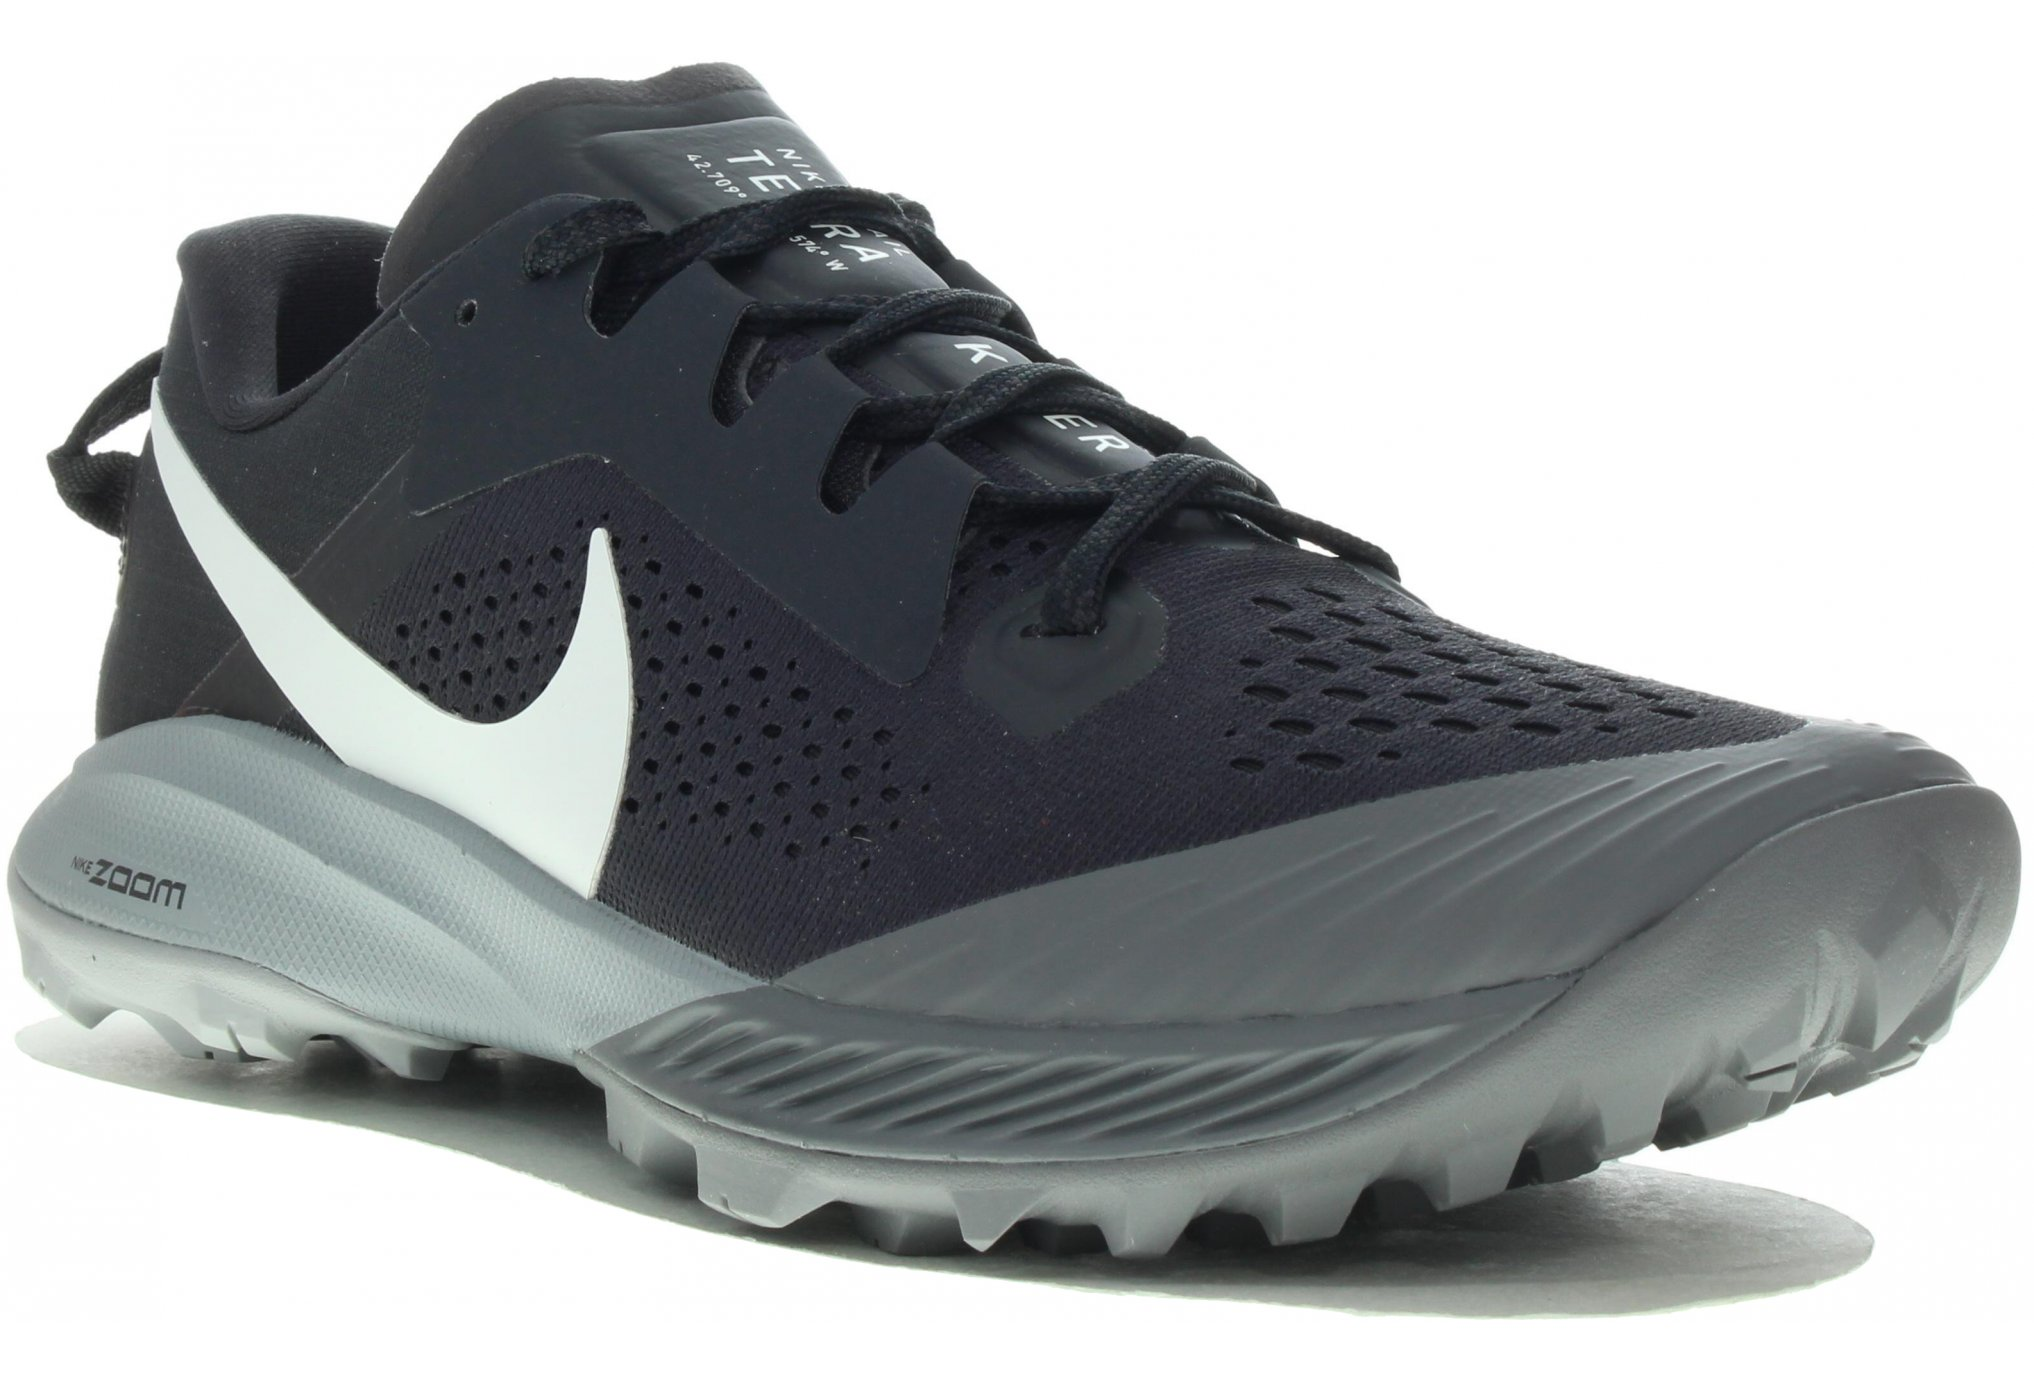 Nike Air Zoom Terra Kiger 6 W Chaussures running femme